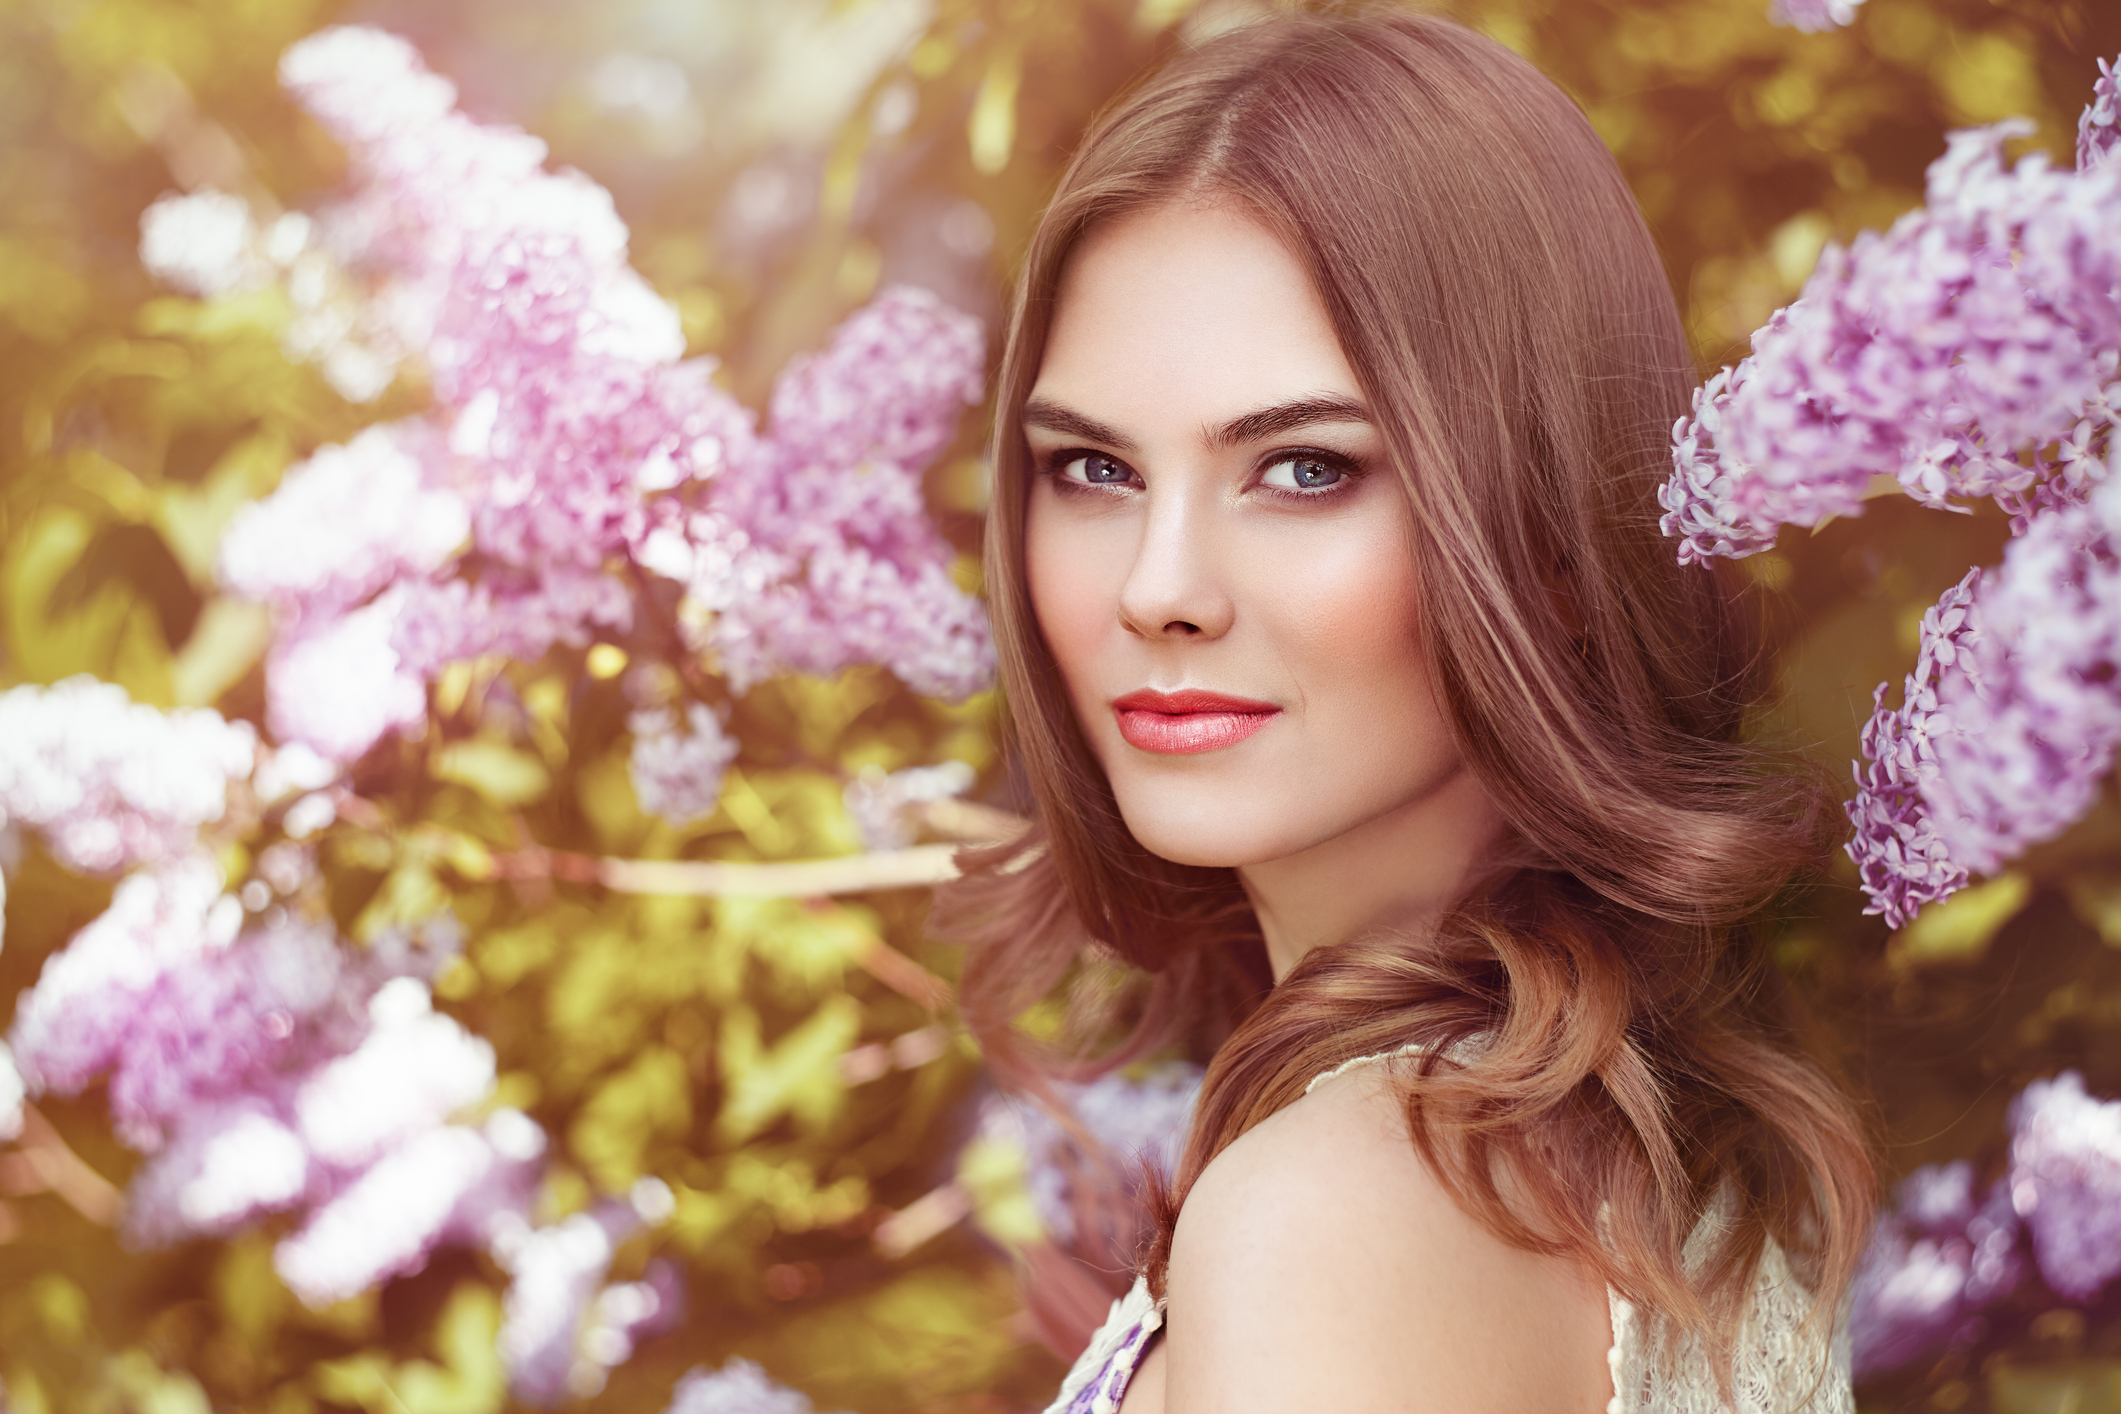 Beautiful Woman with Flowers of Lilac. Spring Blossom. Sexy Glamour Summer Beautiful Lady with Healthy and Beauty Hair